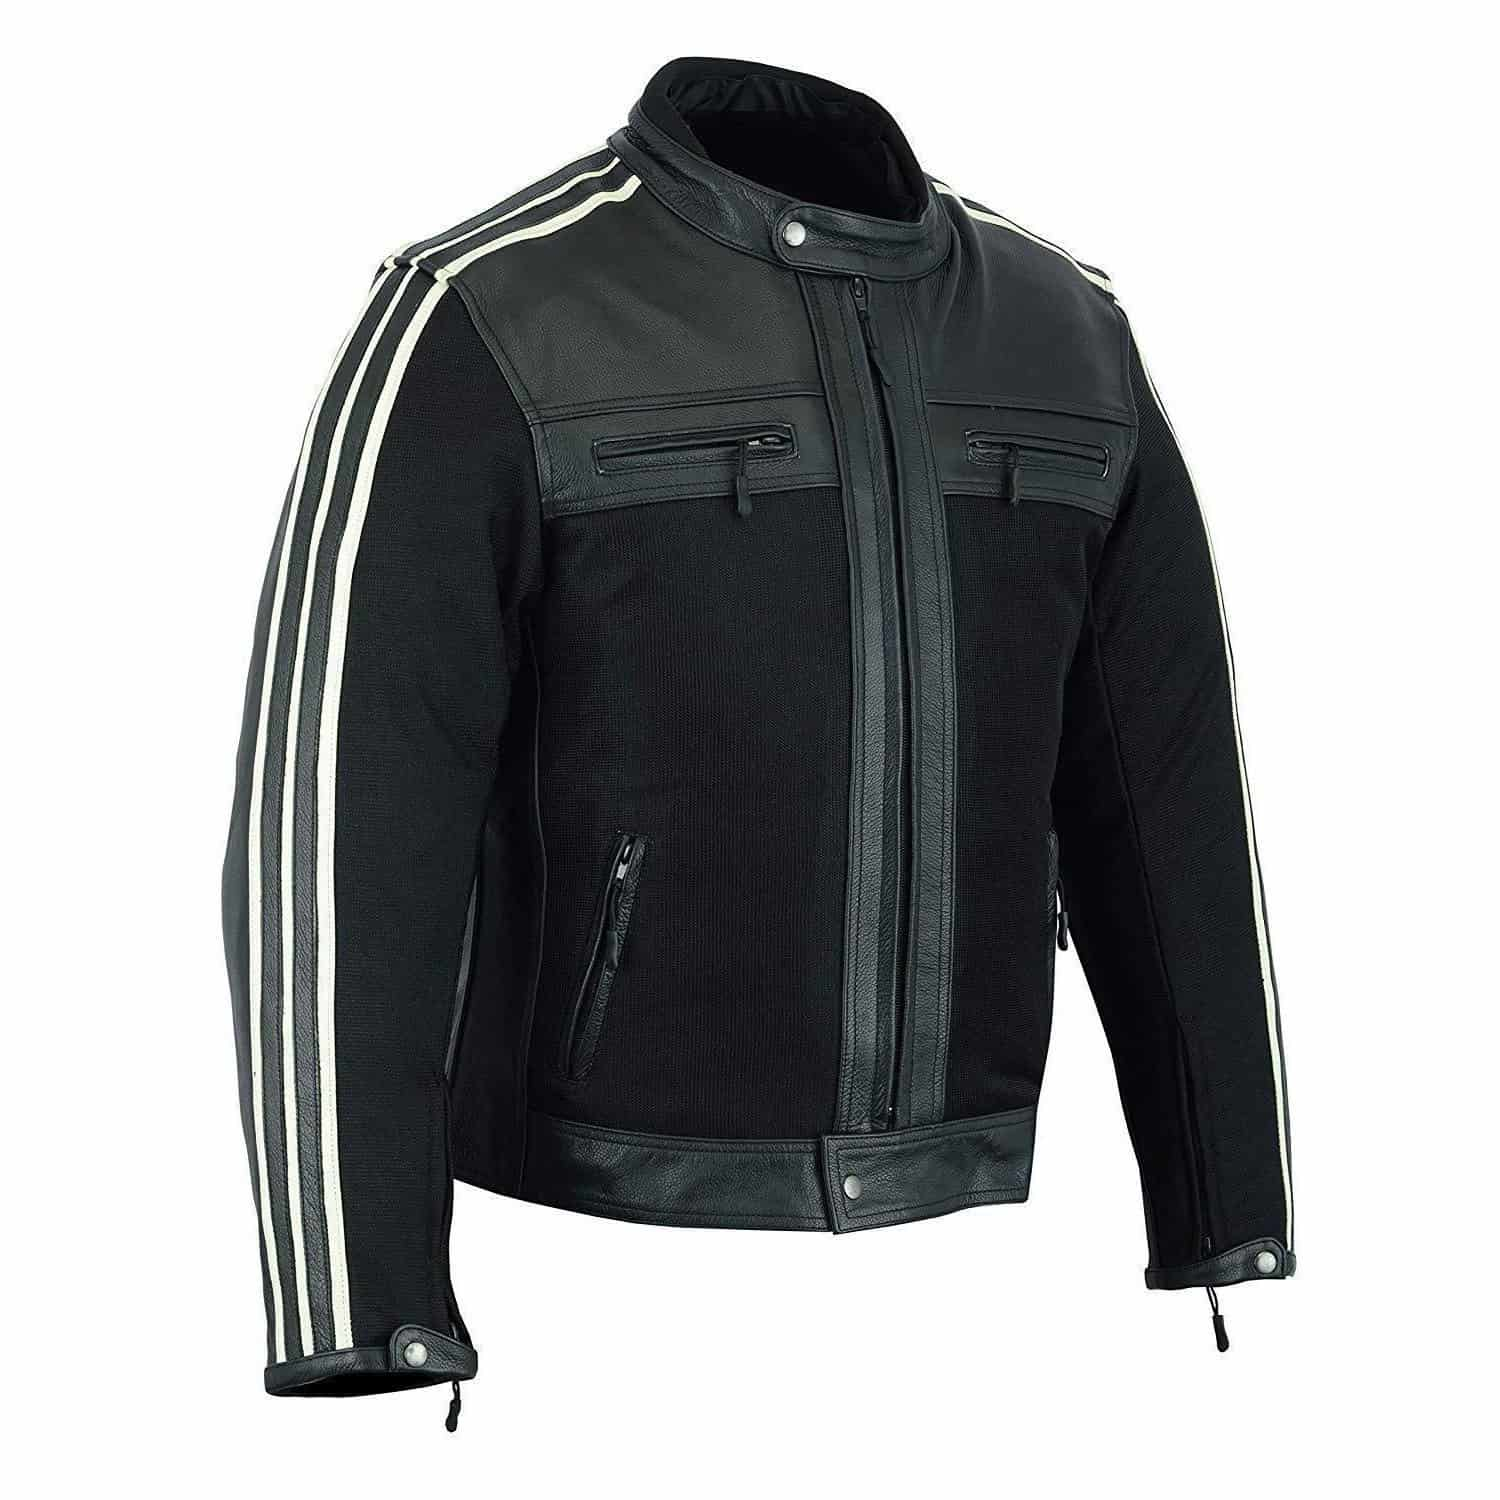 Armored High Protection Jacket